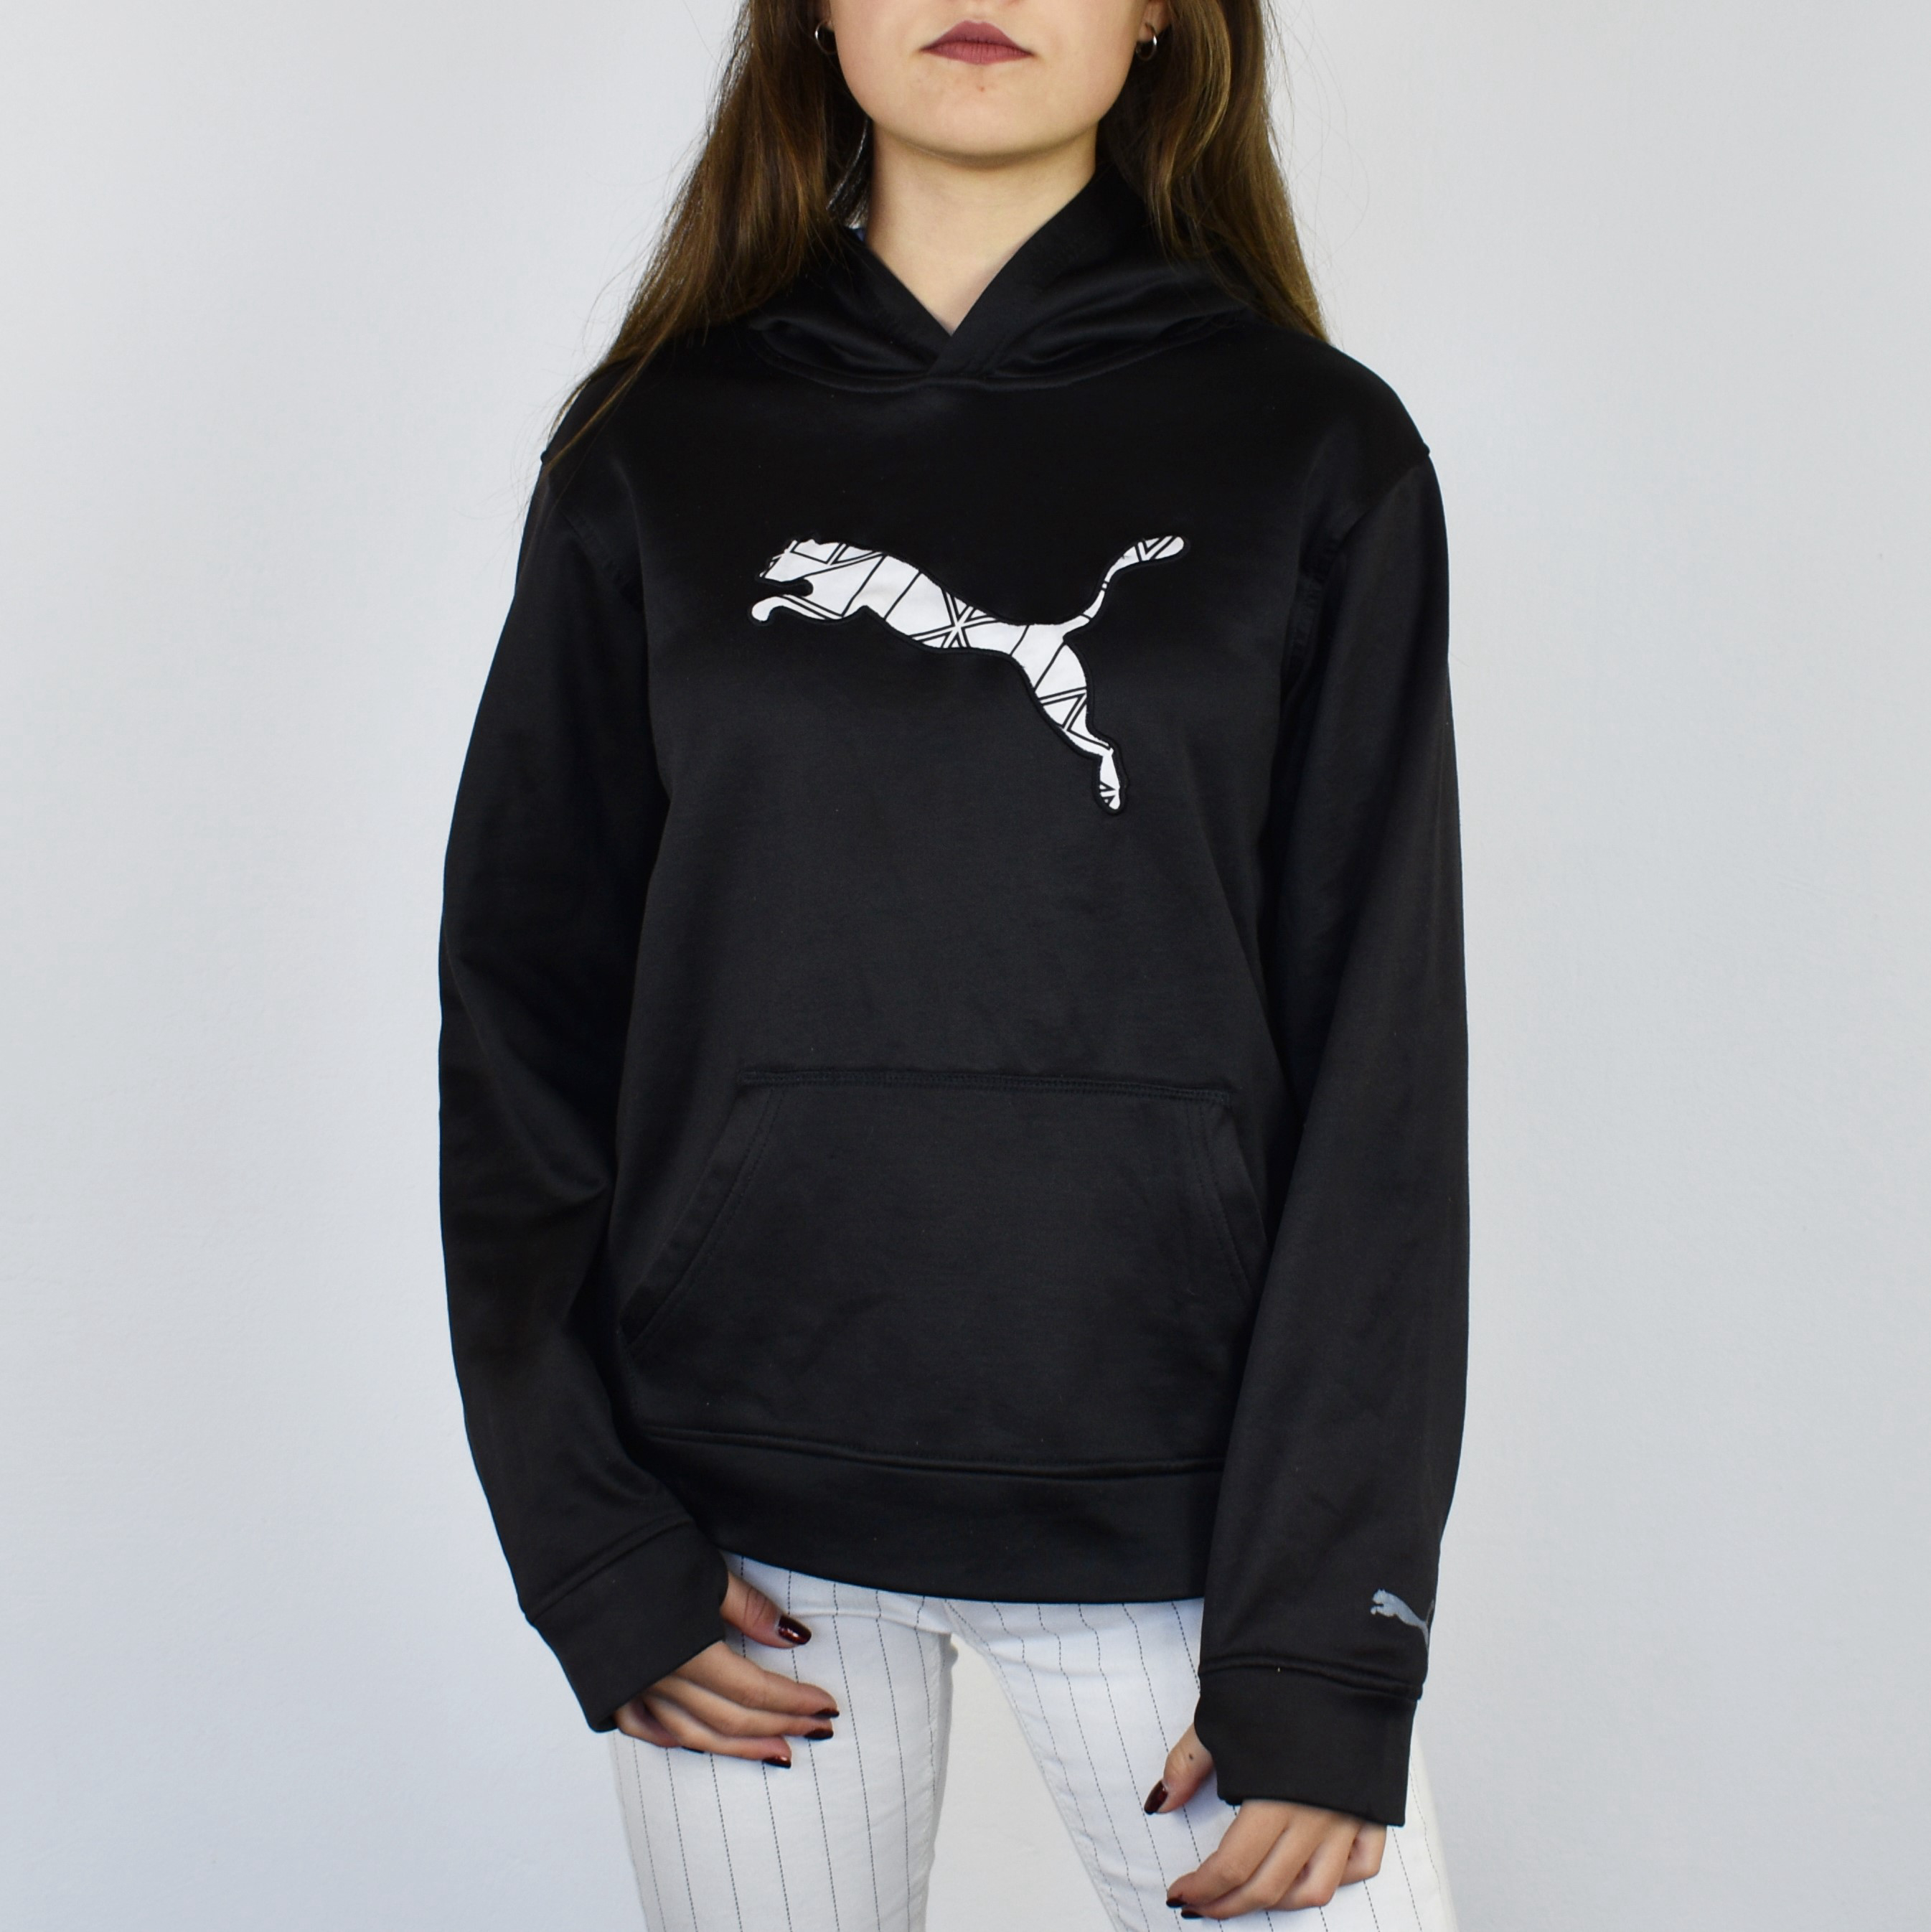 408ff81a3b73b Vintage puma hoodie sweatshirt sweater jumper in black and white